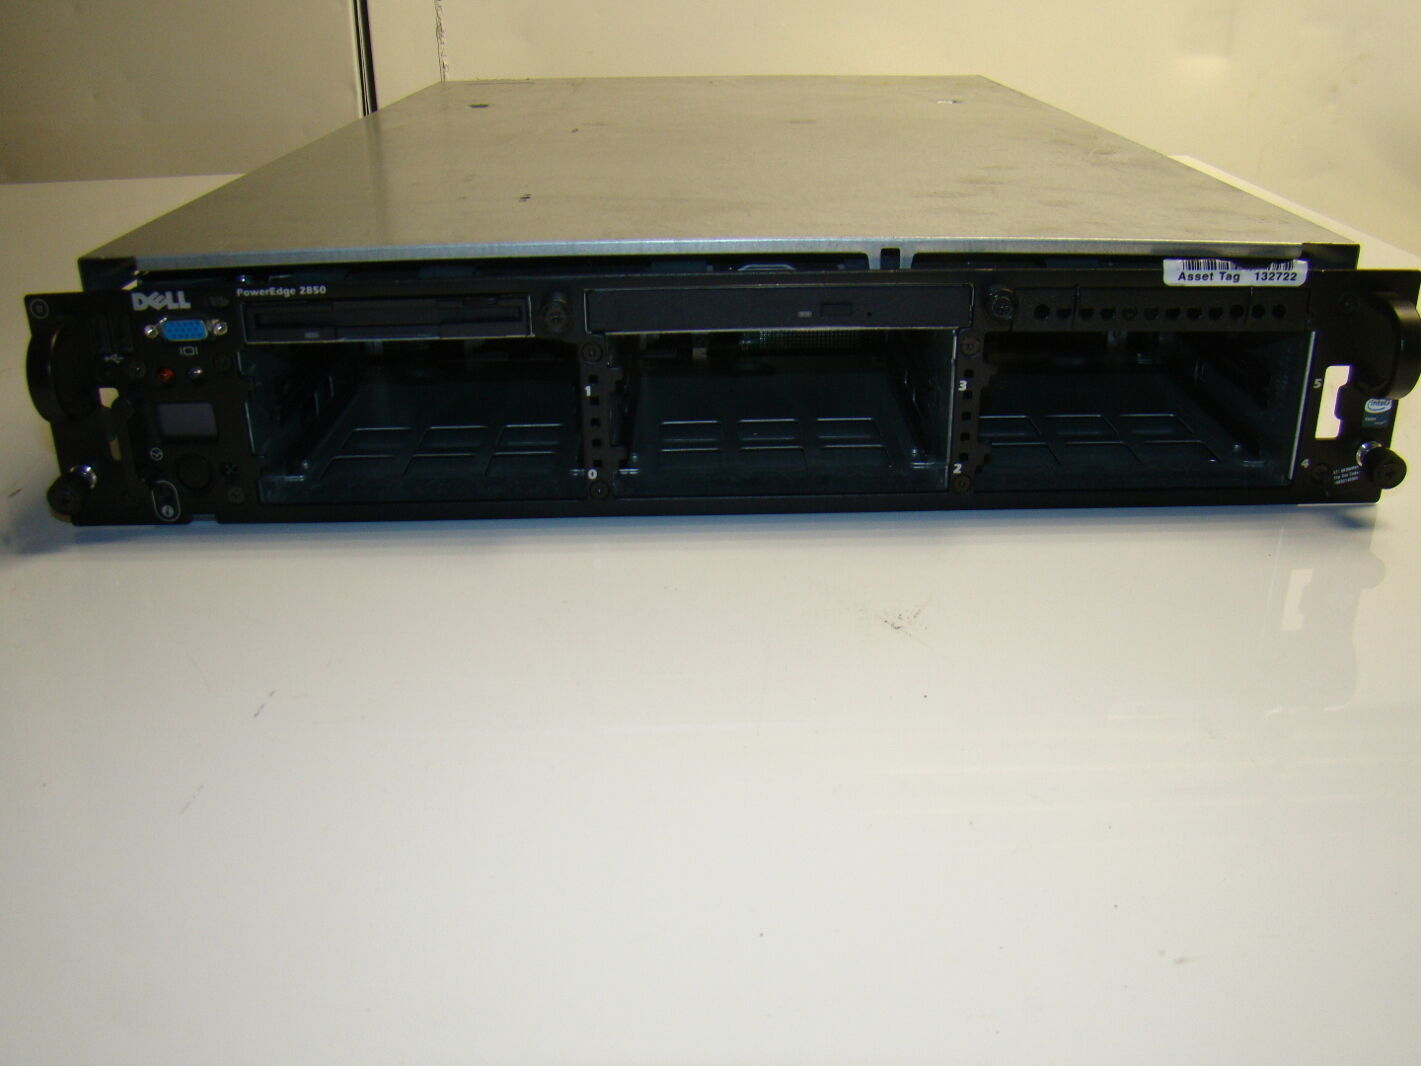 Details about Dell PowerEdge 2850 Server